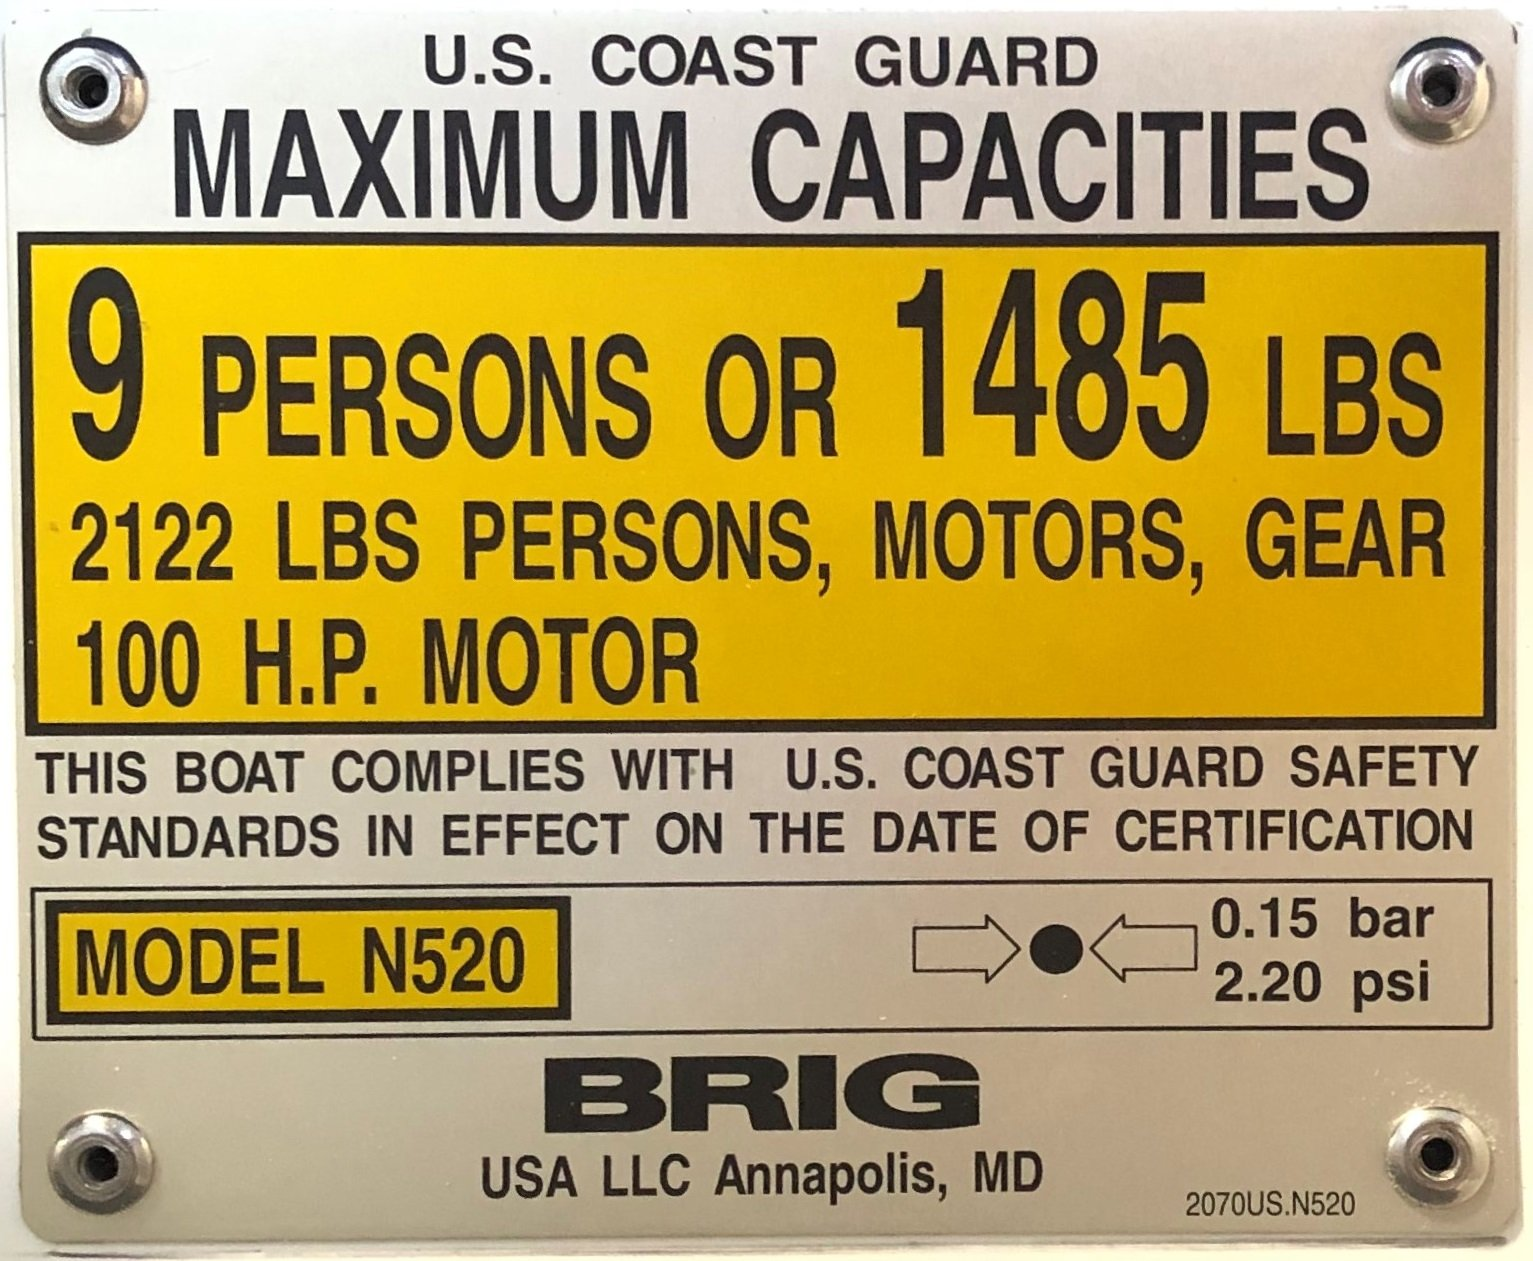 USCG Maximum Capacities Plate